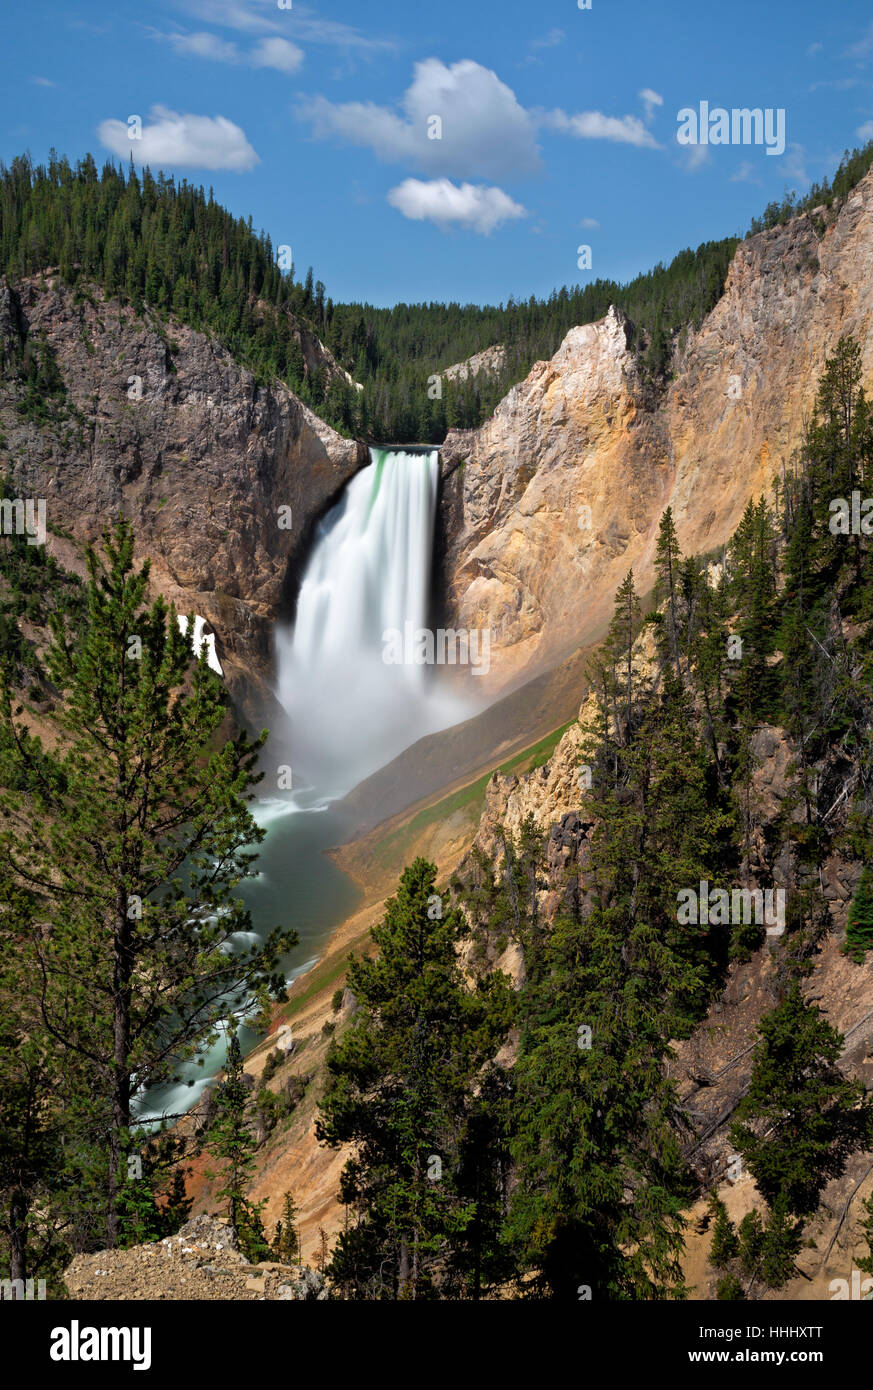 WY02098-00...WASHINGTON - Lower Falls dans le Grand Canyon de la Yellowstone River dans le Parc National de Yellowstone. Photo Stock